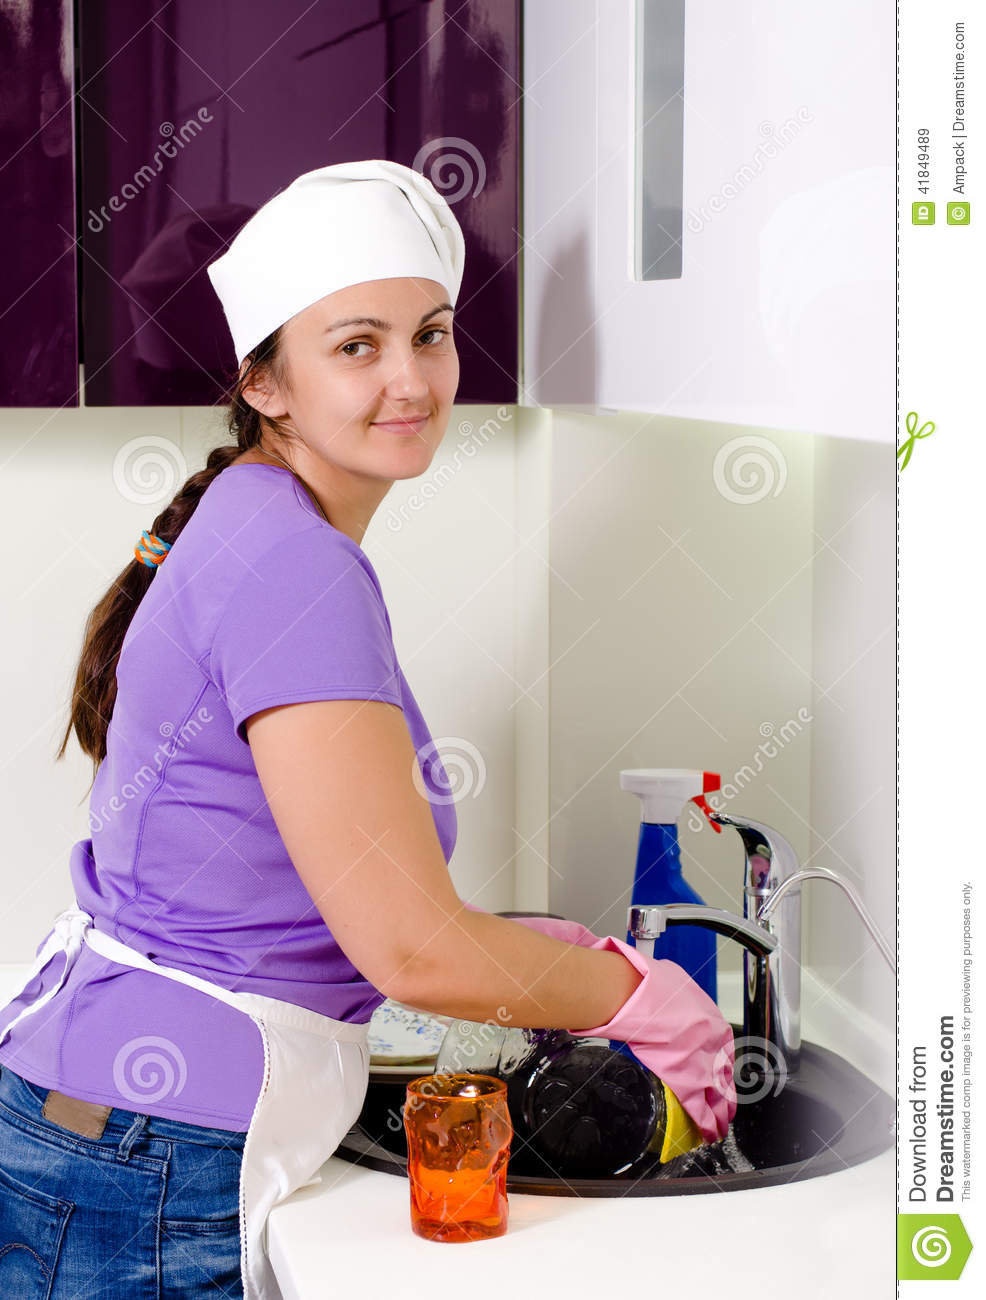 Smiling Woman Cook Cleaning Dishes Stock Photo - Image ...